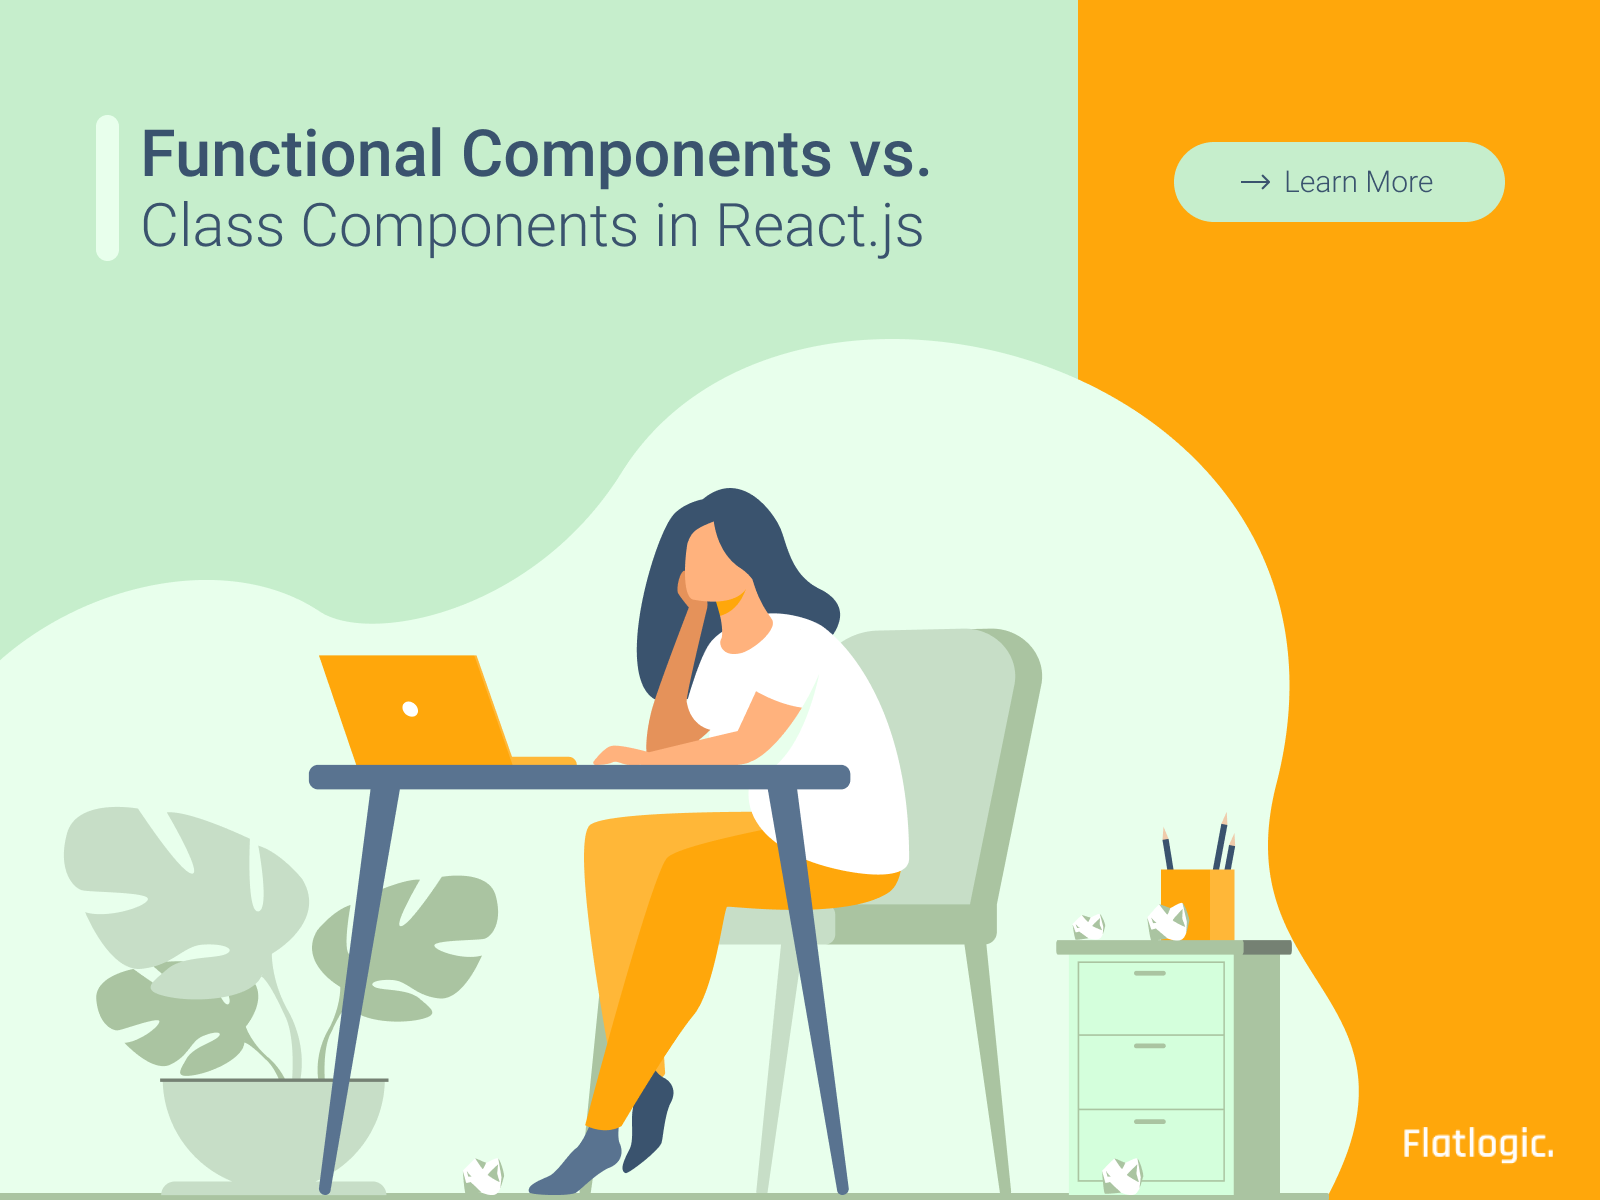 Functional Components vs. Class Components in React.js